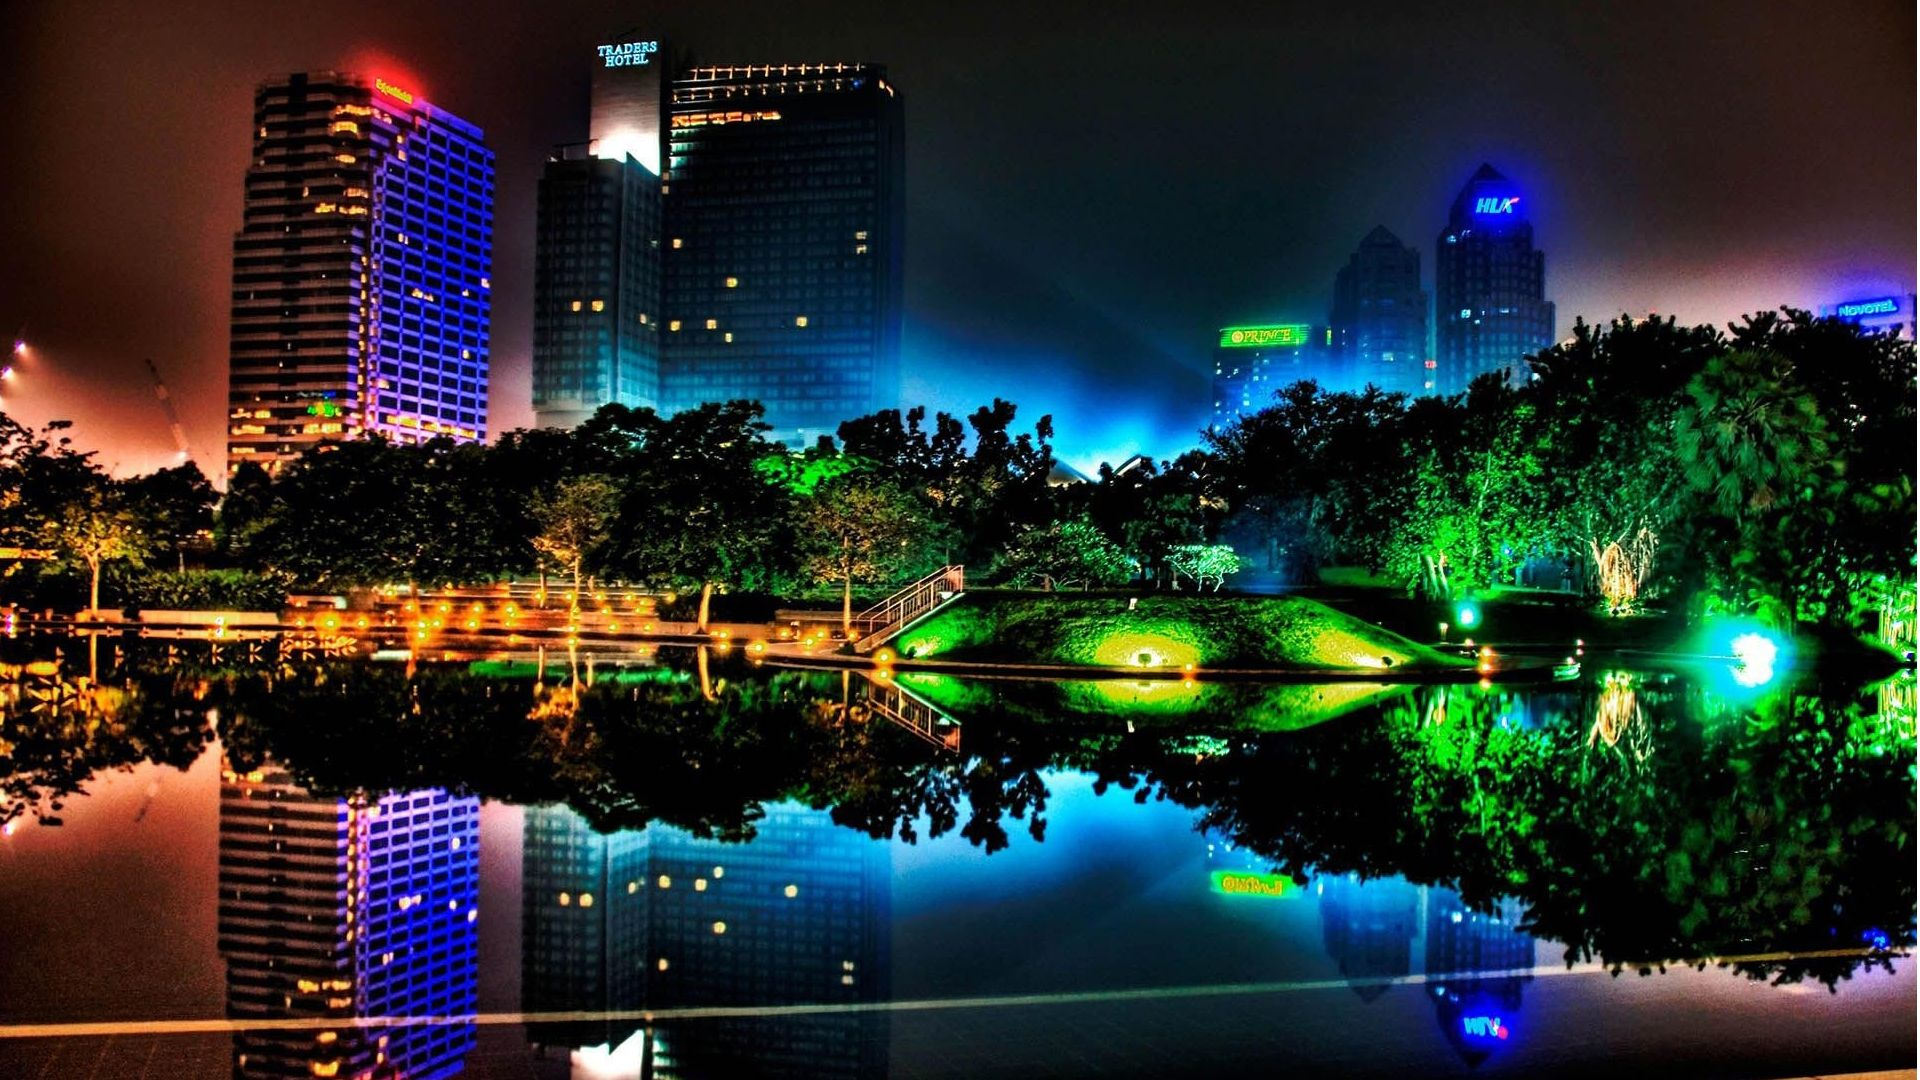 Mosaic Free Hd City Night Neon Wallpaper in Full High 1920×1080 Resolution  ...